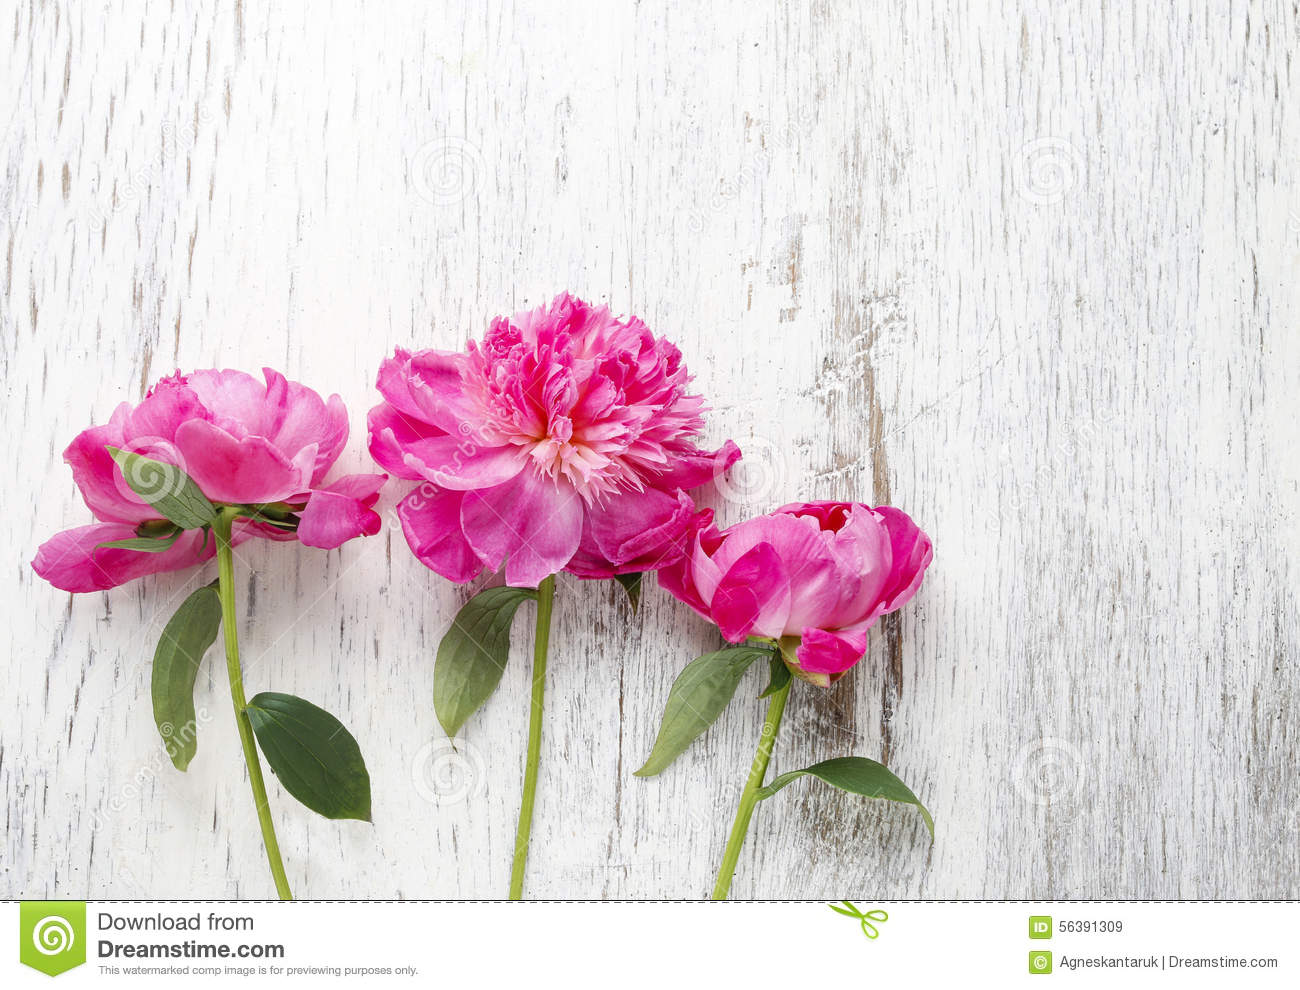 The Pink Peonies stunning pink peonies on rustic wooden background stock photo